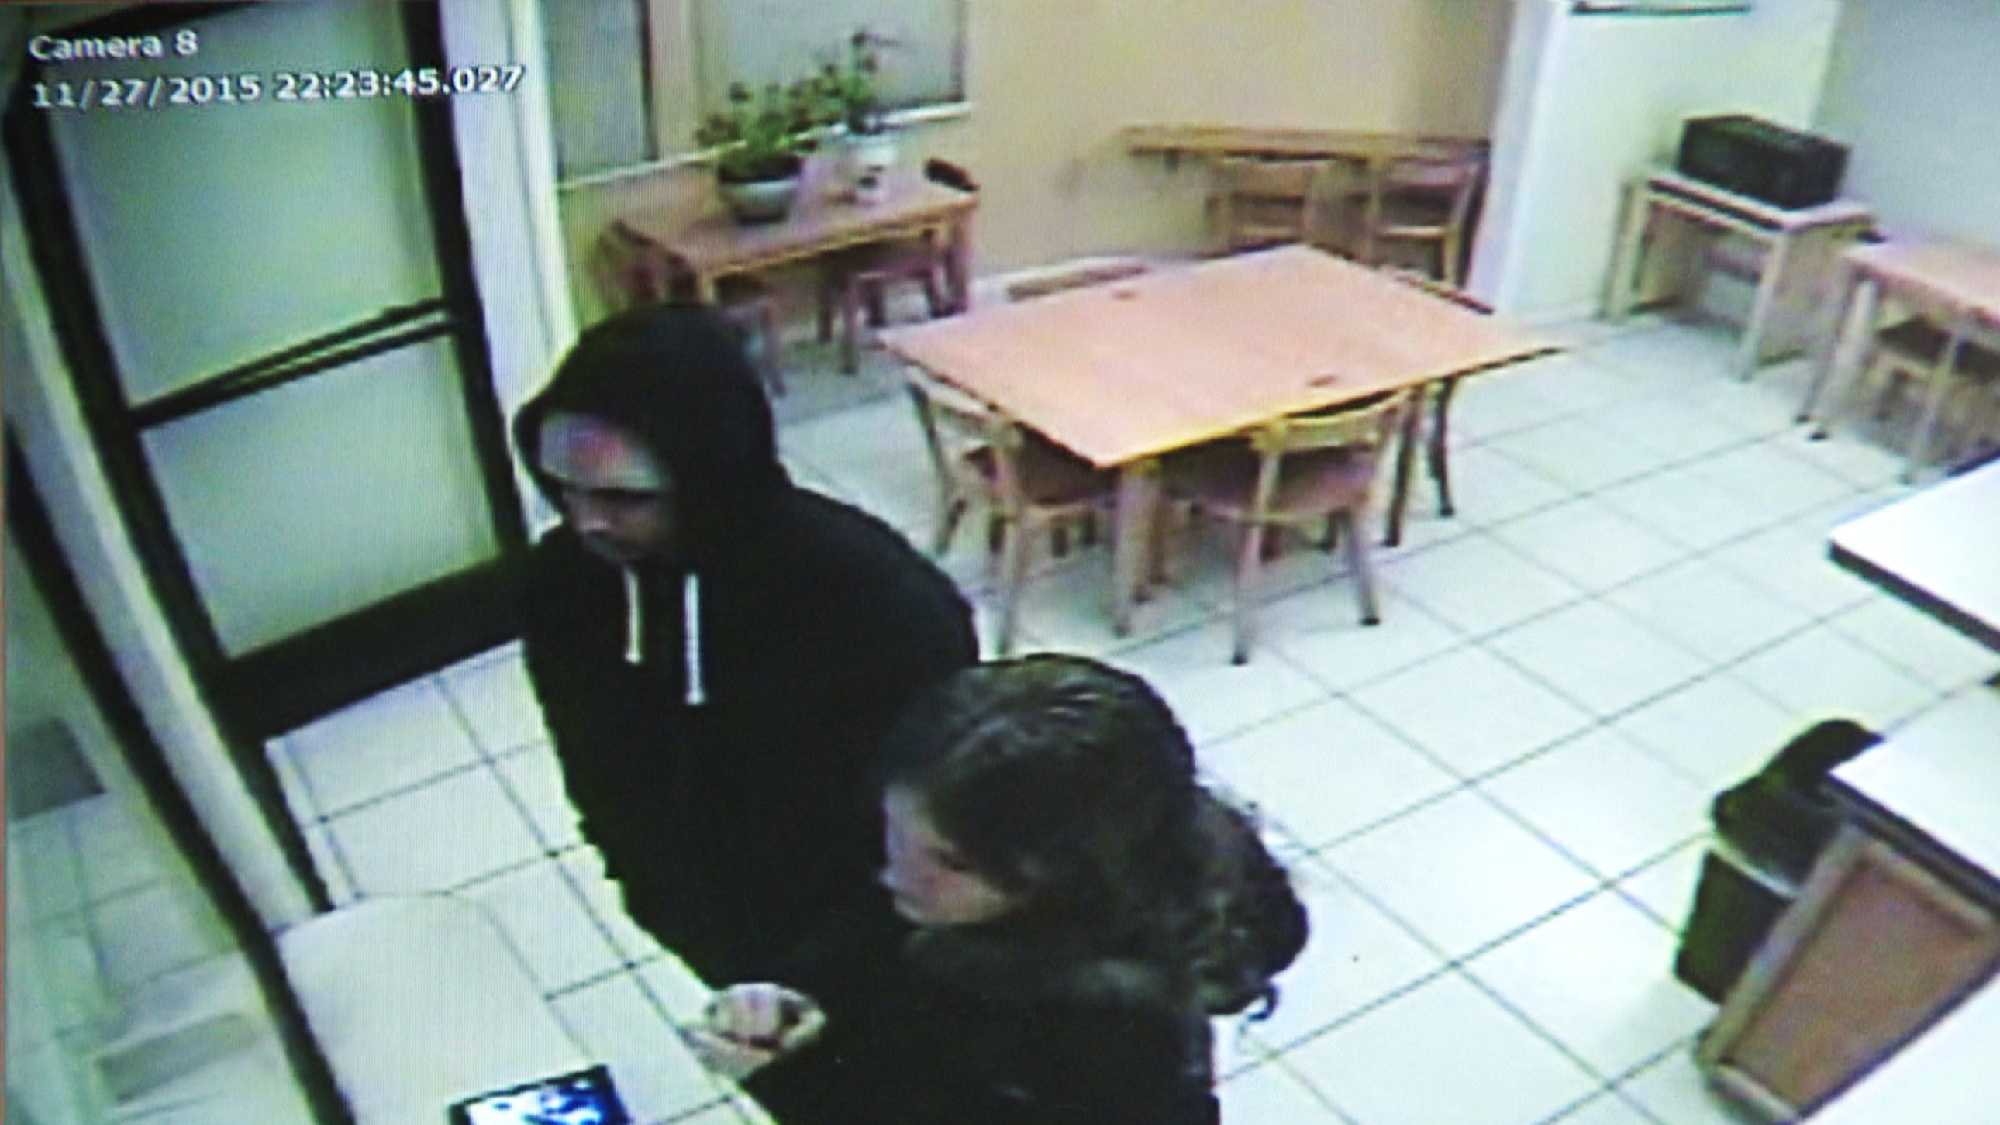 Huntsman and Curiel are seen checking into a Motel 6 on Nov. 27 in Dunnigan, Calif.